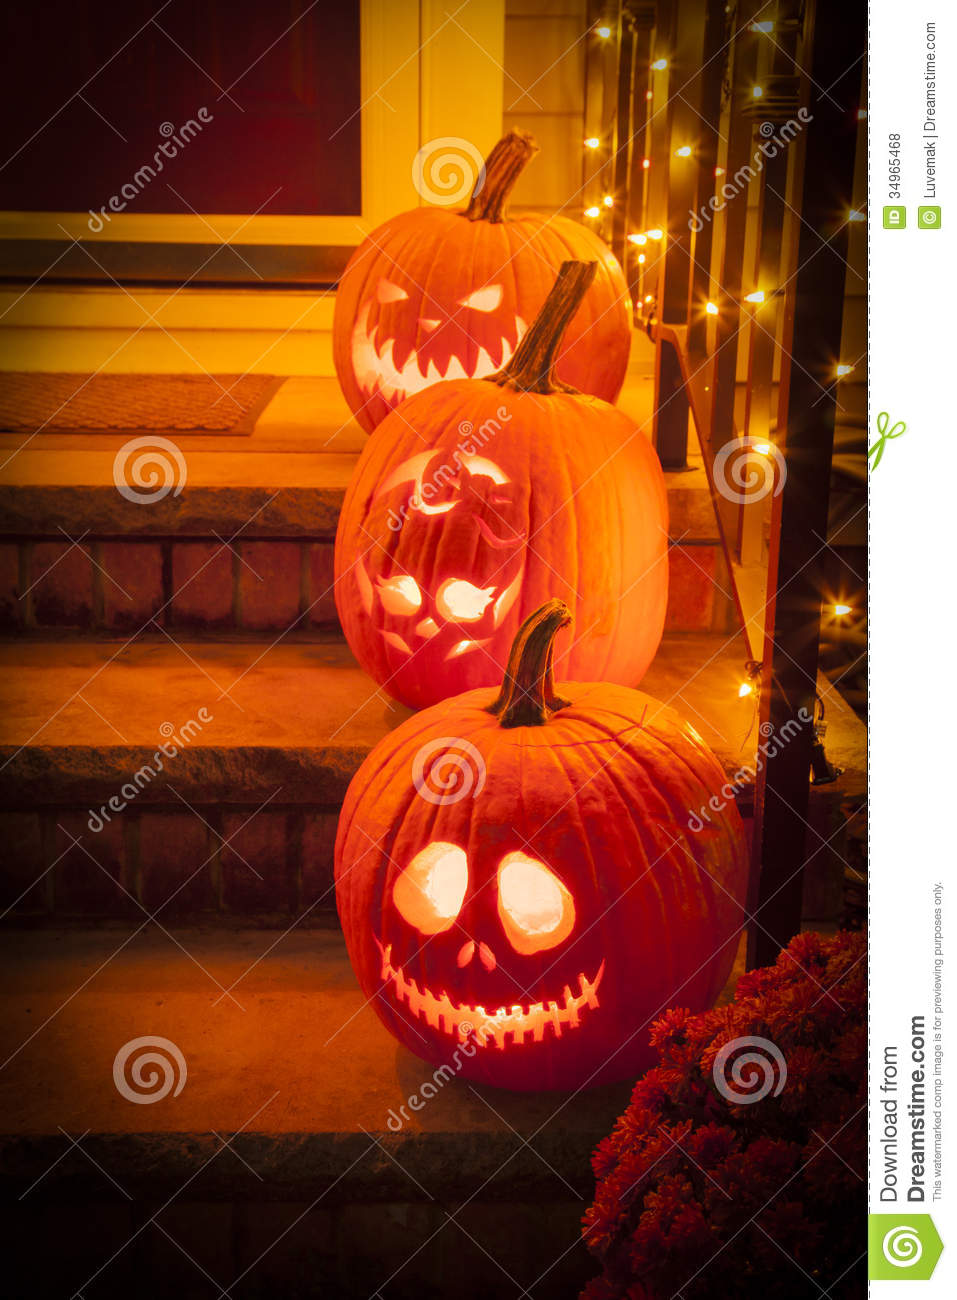 Character Pumpkin Carving stock photo. Image of seasonal - 34965468